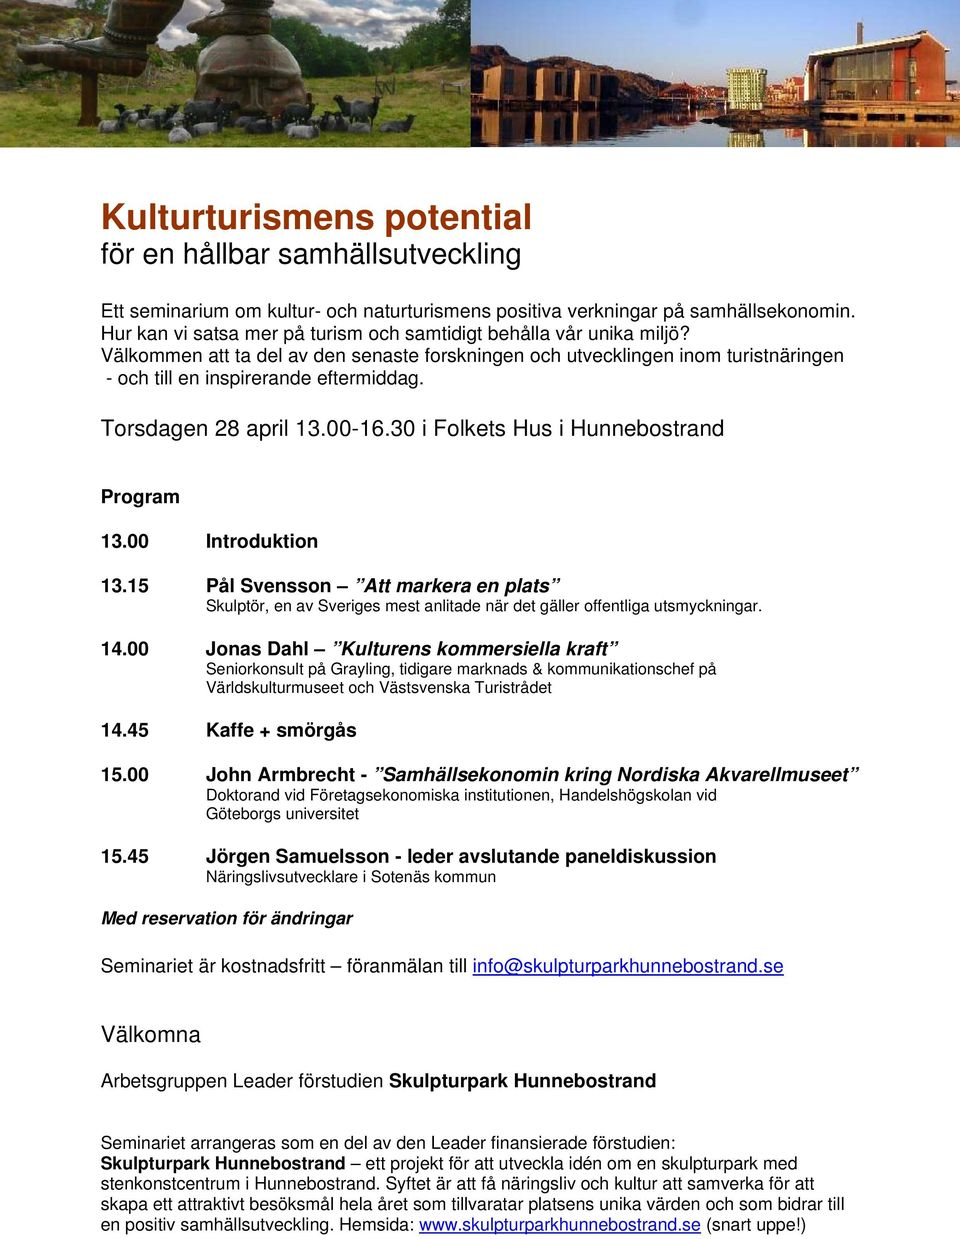 Torsdagen 28 april 13.00-16.30 i Folkets Hus i Hunnebostrand Program 13.00 Introduktion 13.